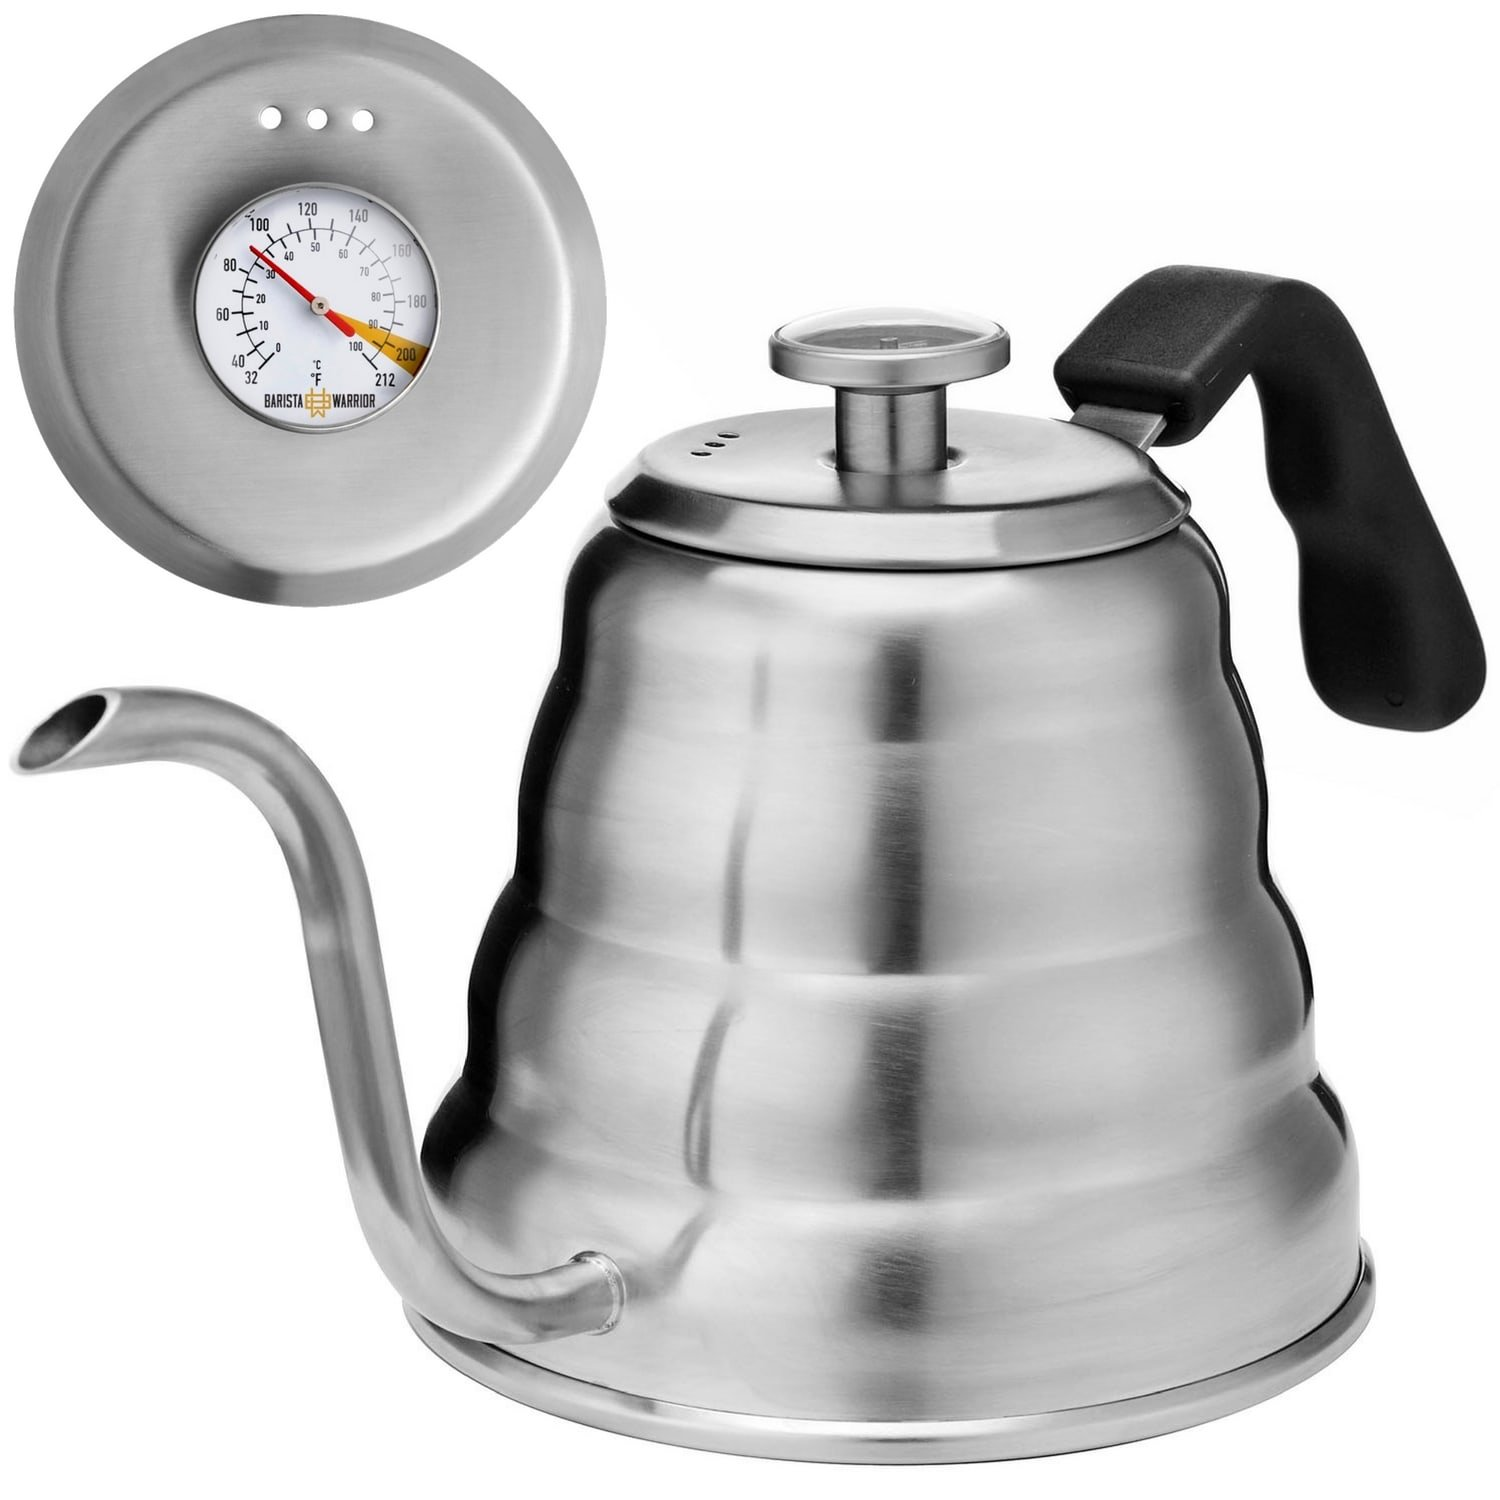 Pour Over Coffee Kettle with Thermometer for Exact Temperature - 1.2 Liter | 40 fl oz - Gooseneck Pour Over Kettle for Drip Coffee and Tea